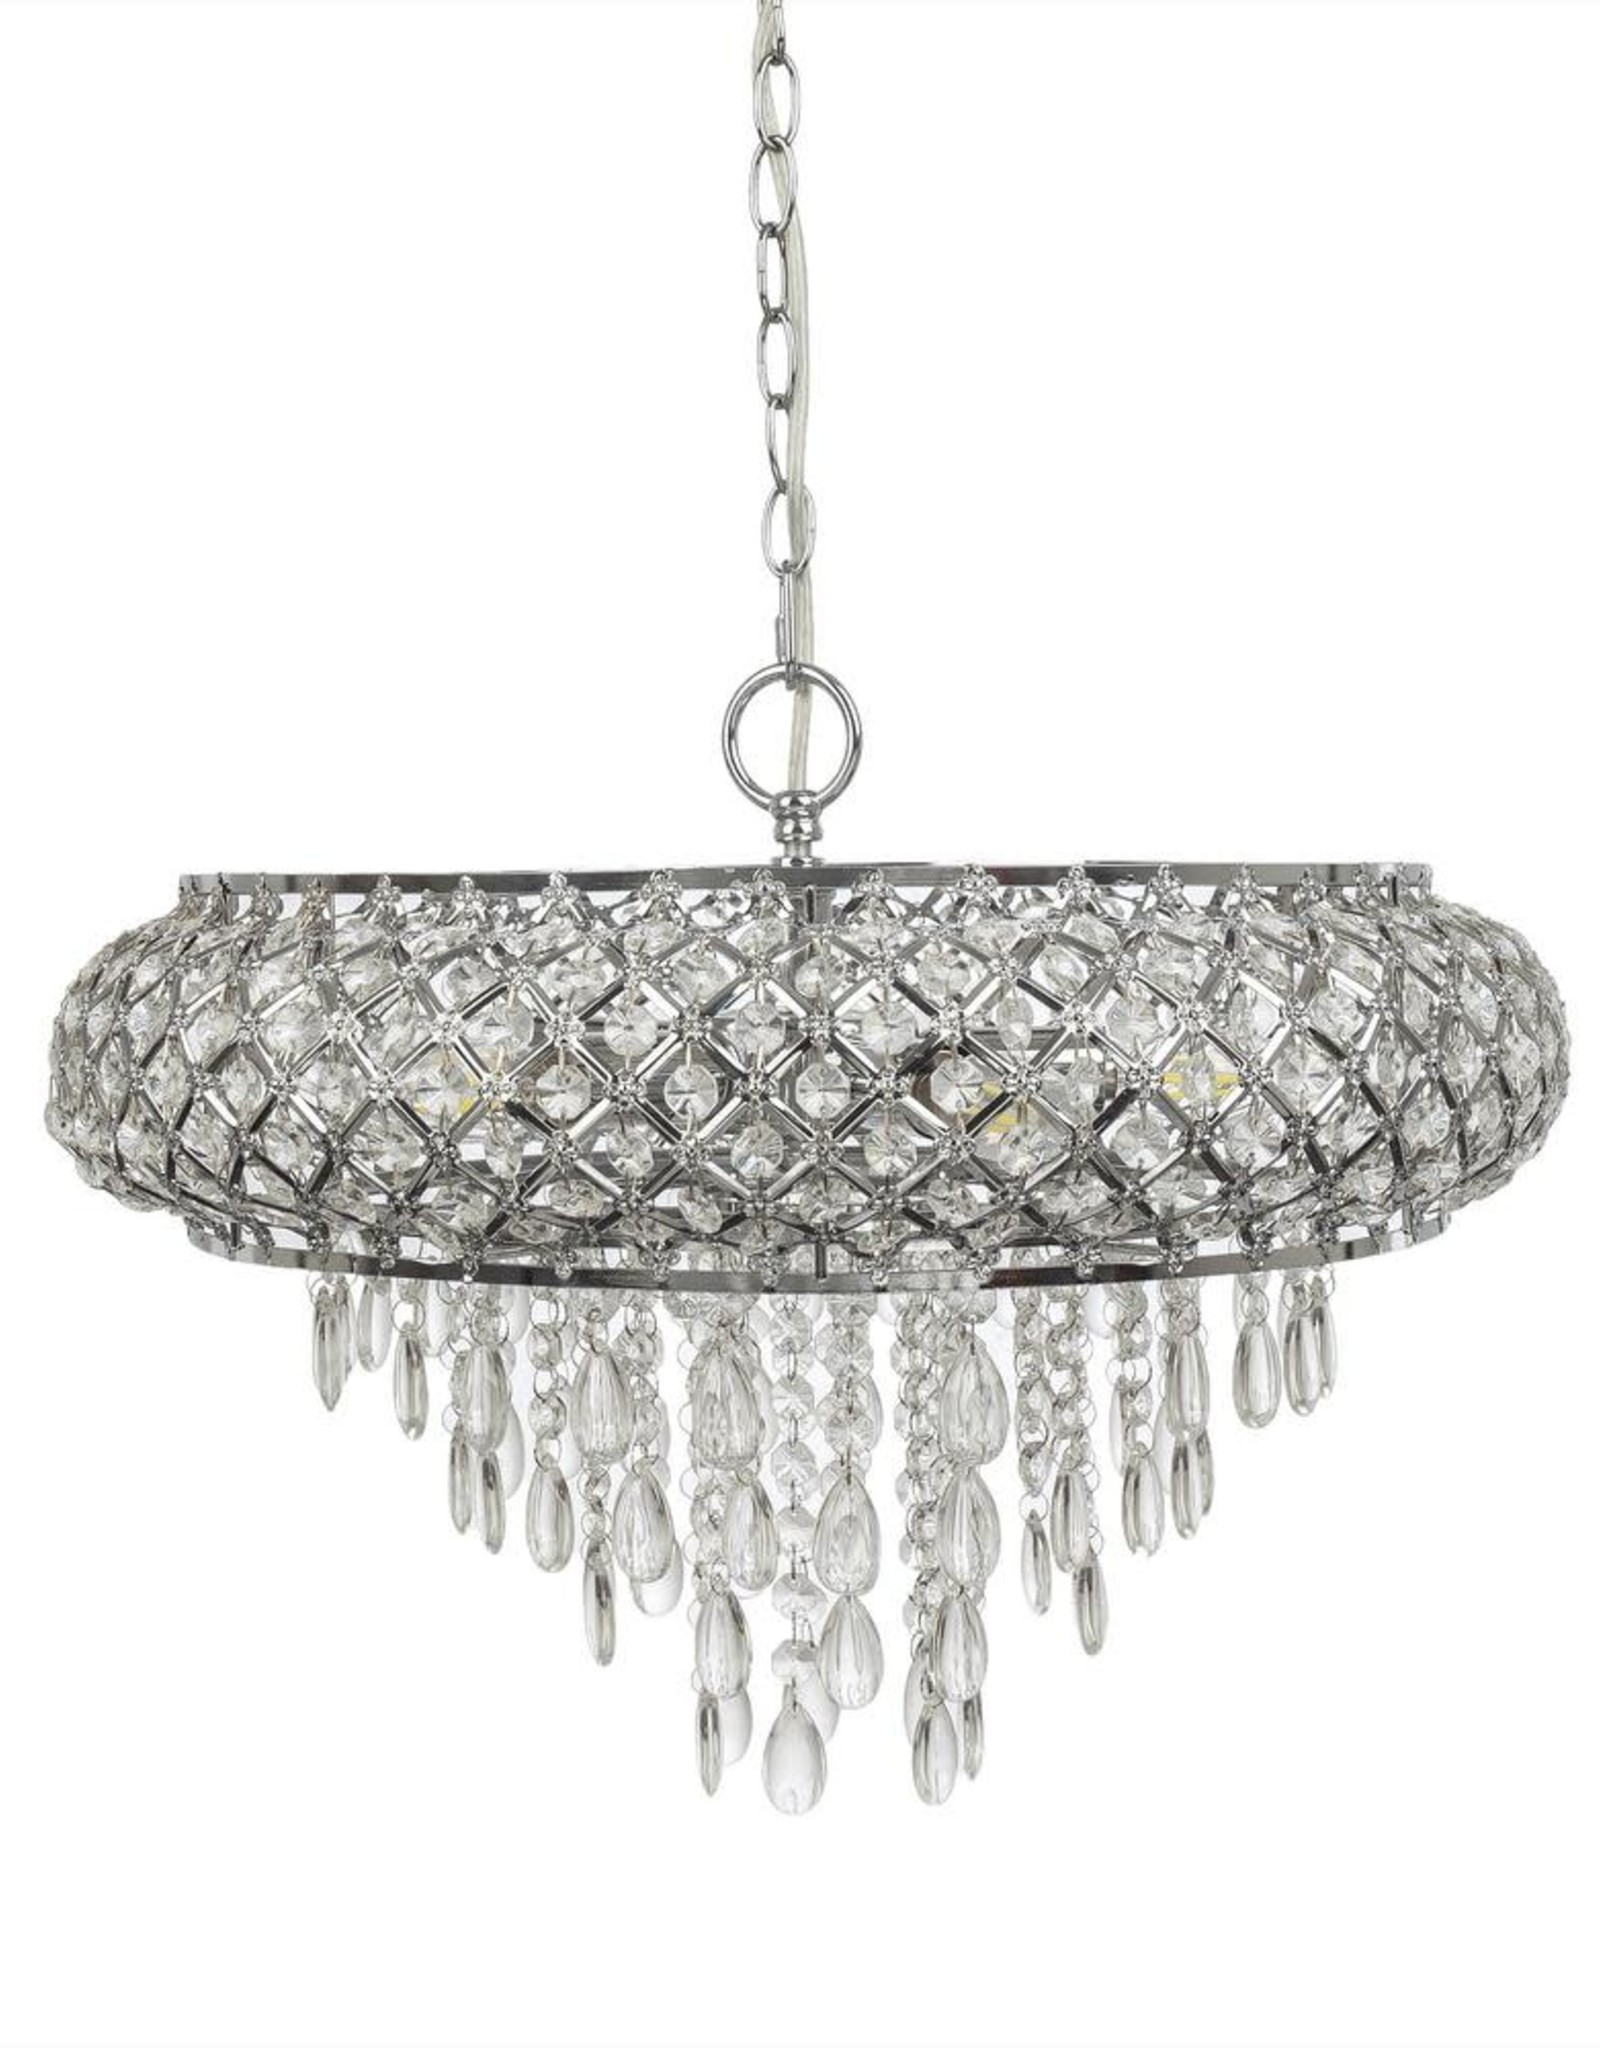 River of Goods 5-Light Chrome Chandelier with Tiered Crystal Glass Shade